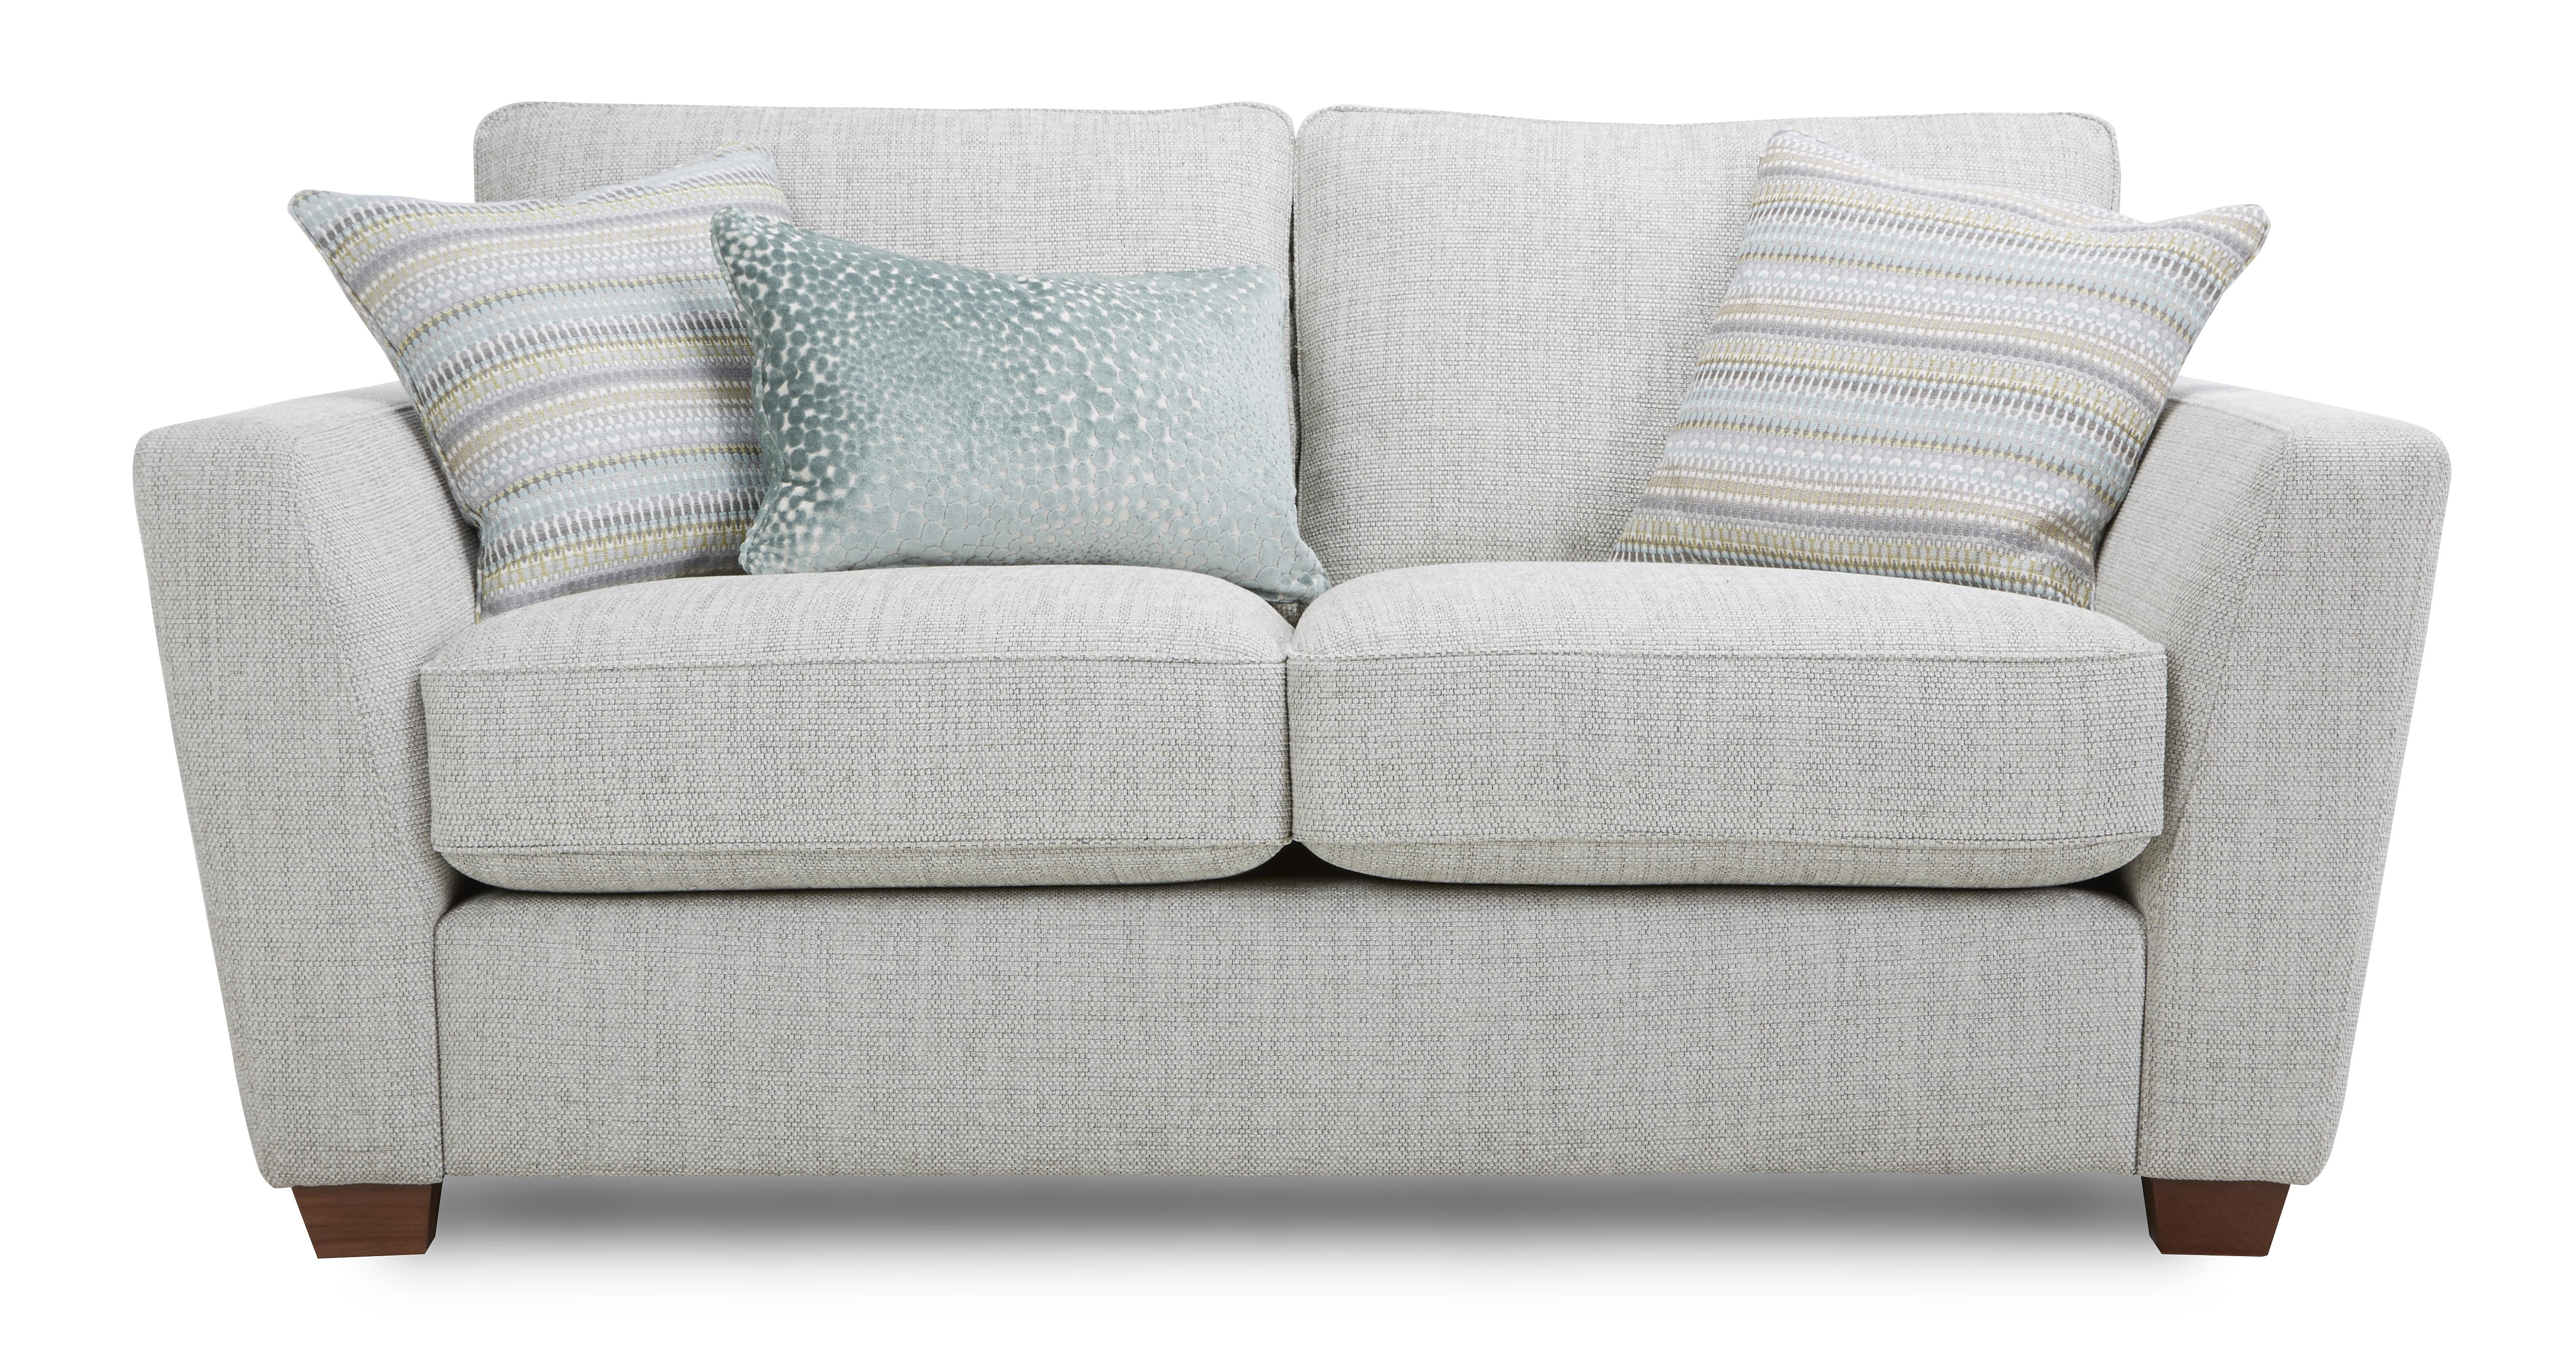 Dfs Sofa Care Sophia 2 Seater Sofa | Dfs